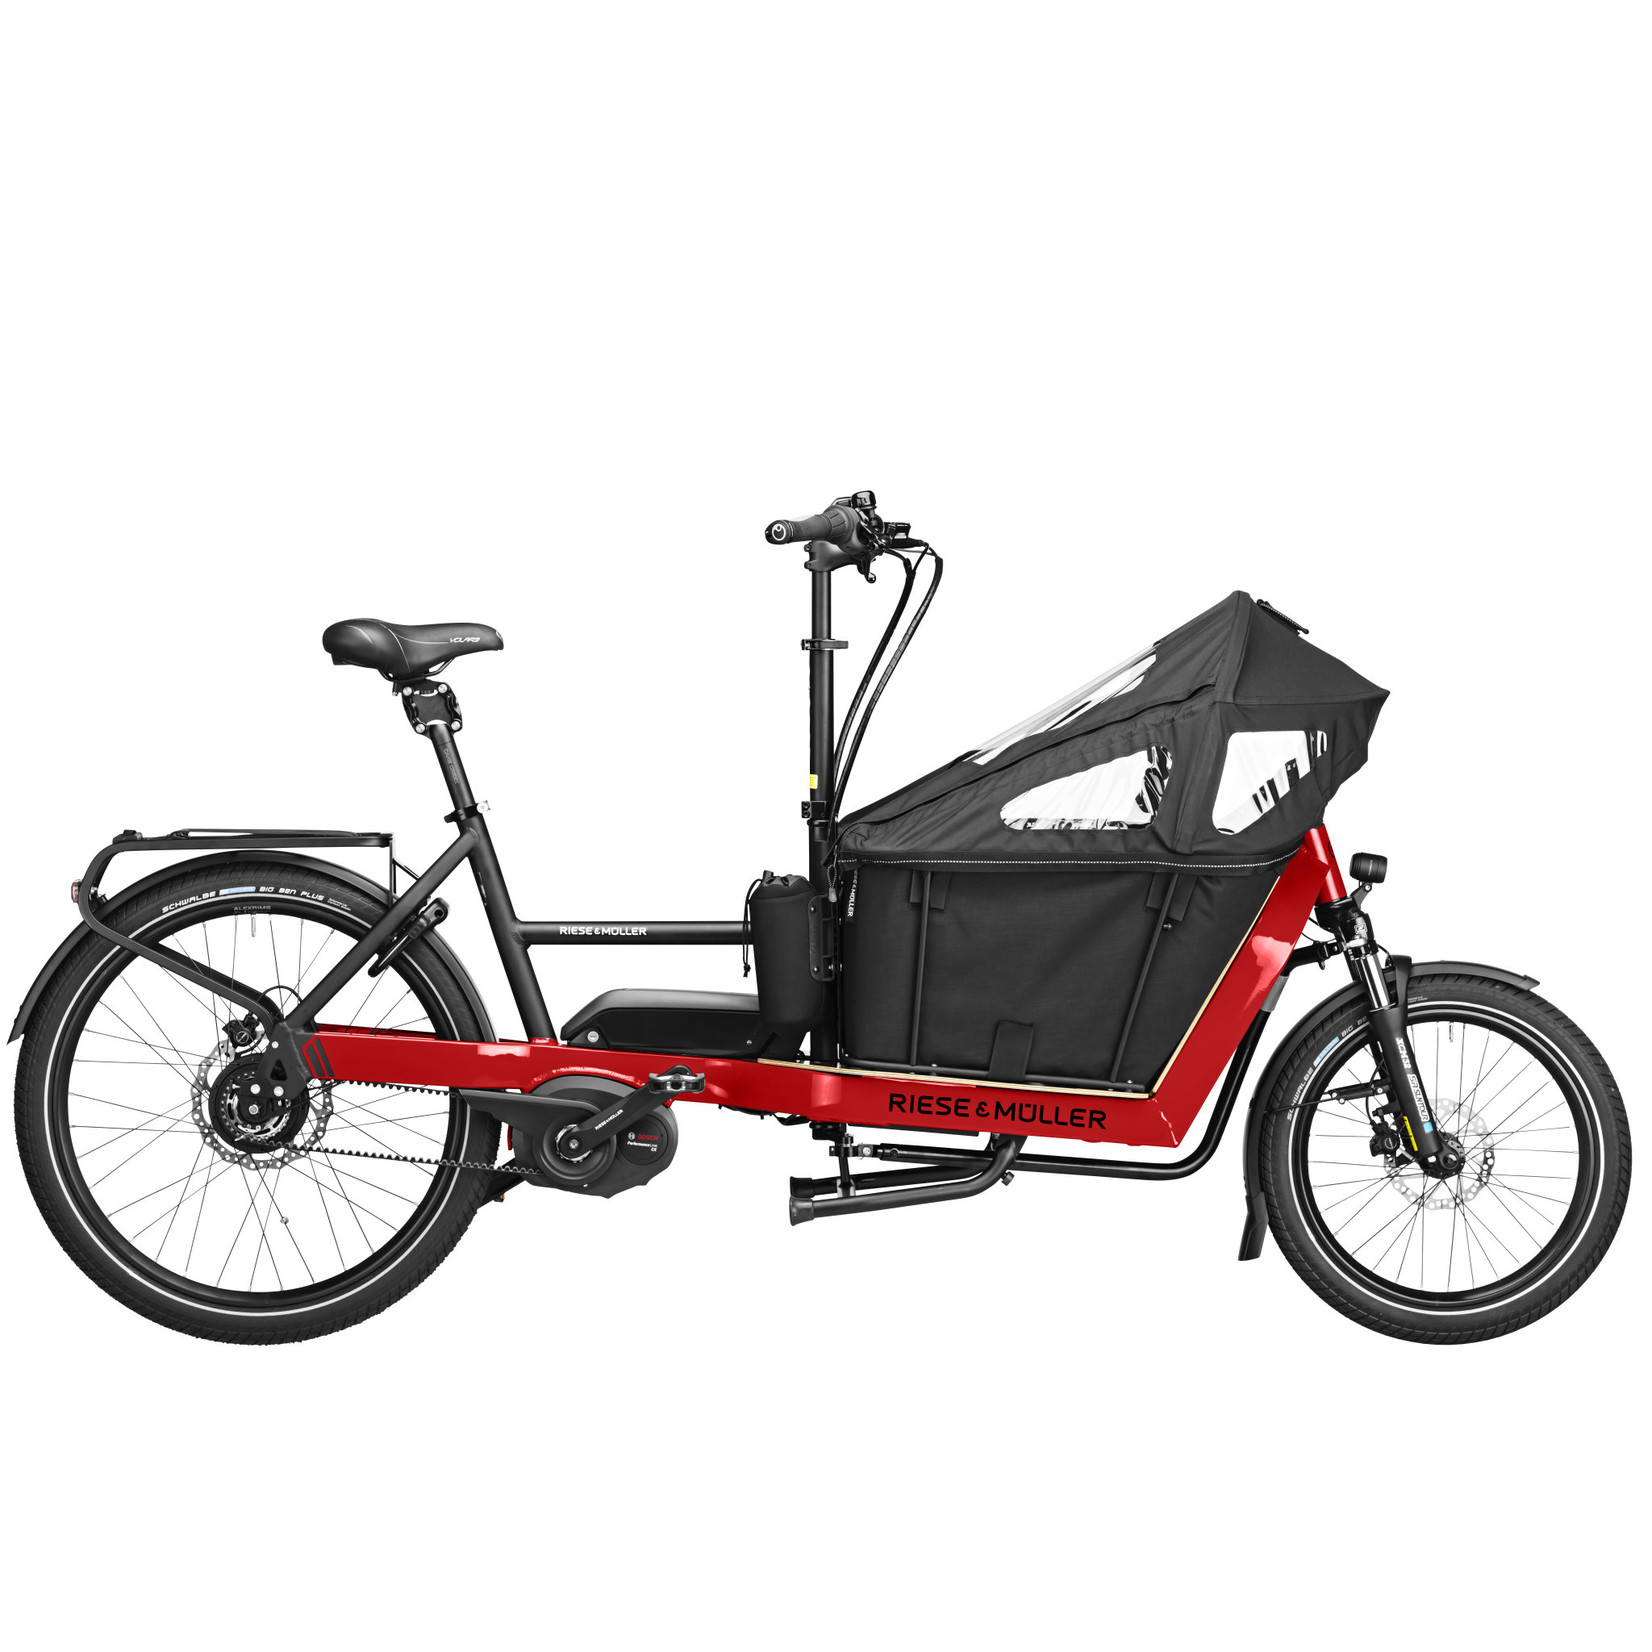 Riese & Muller Riese & Muller : Packster 40 Touring